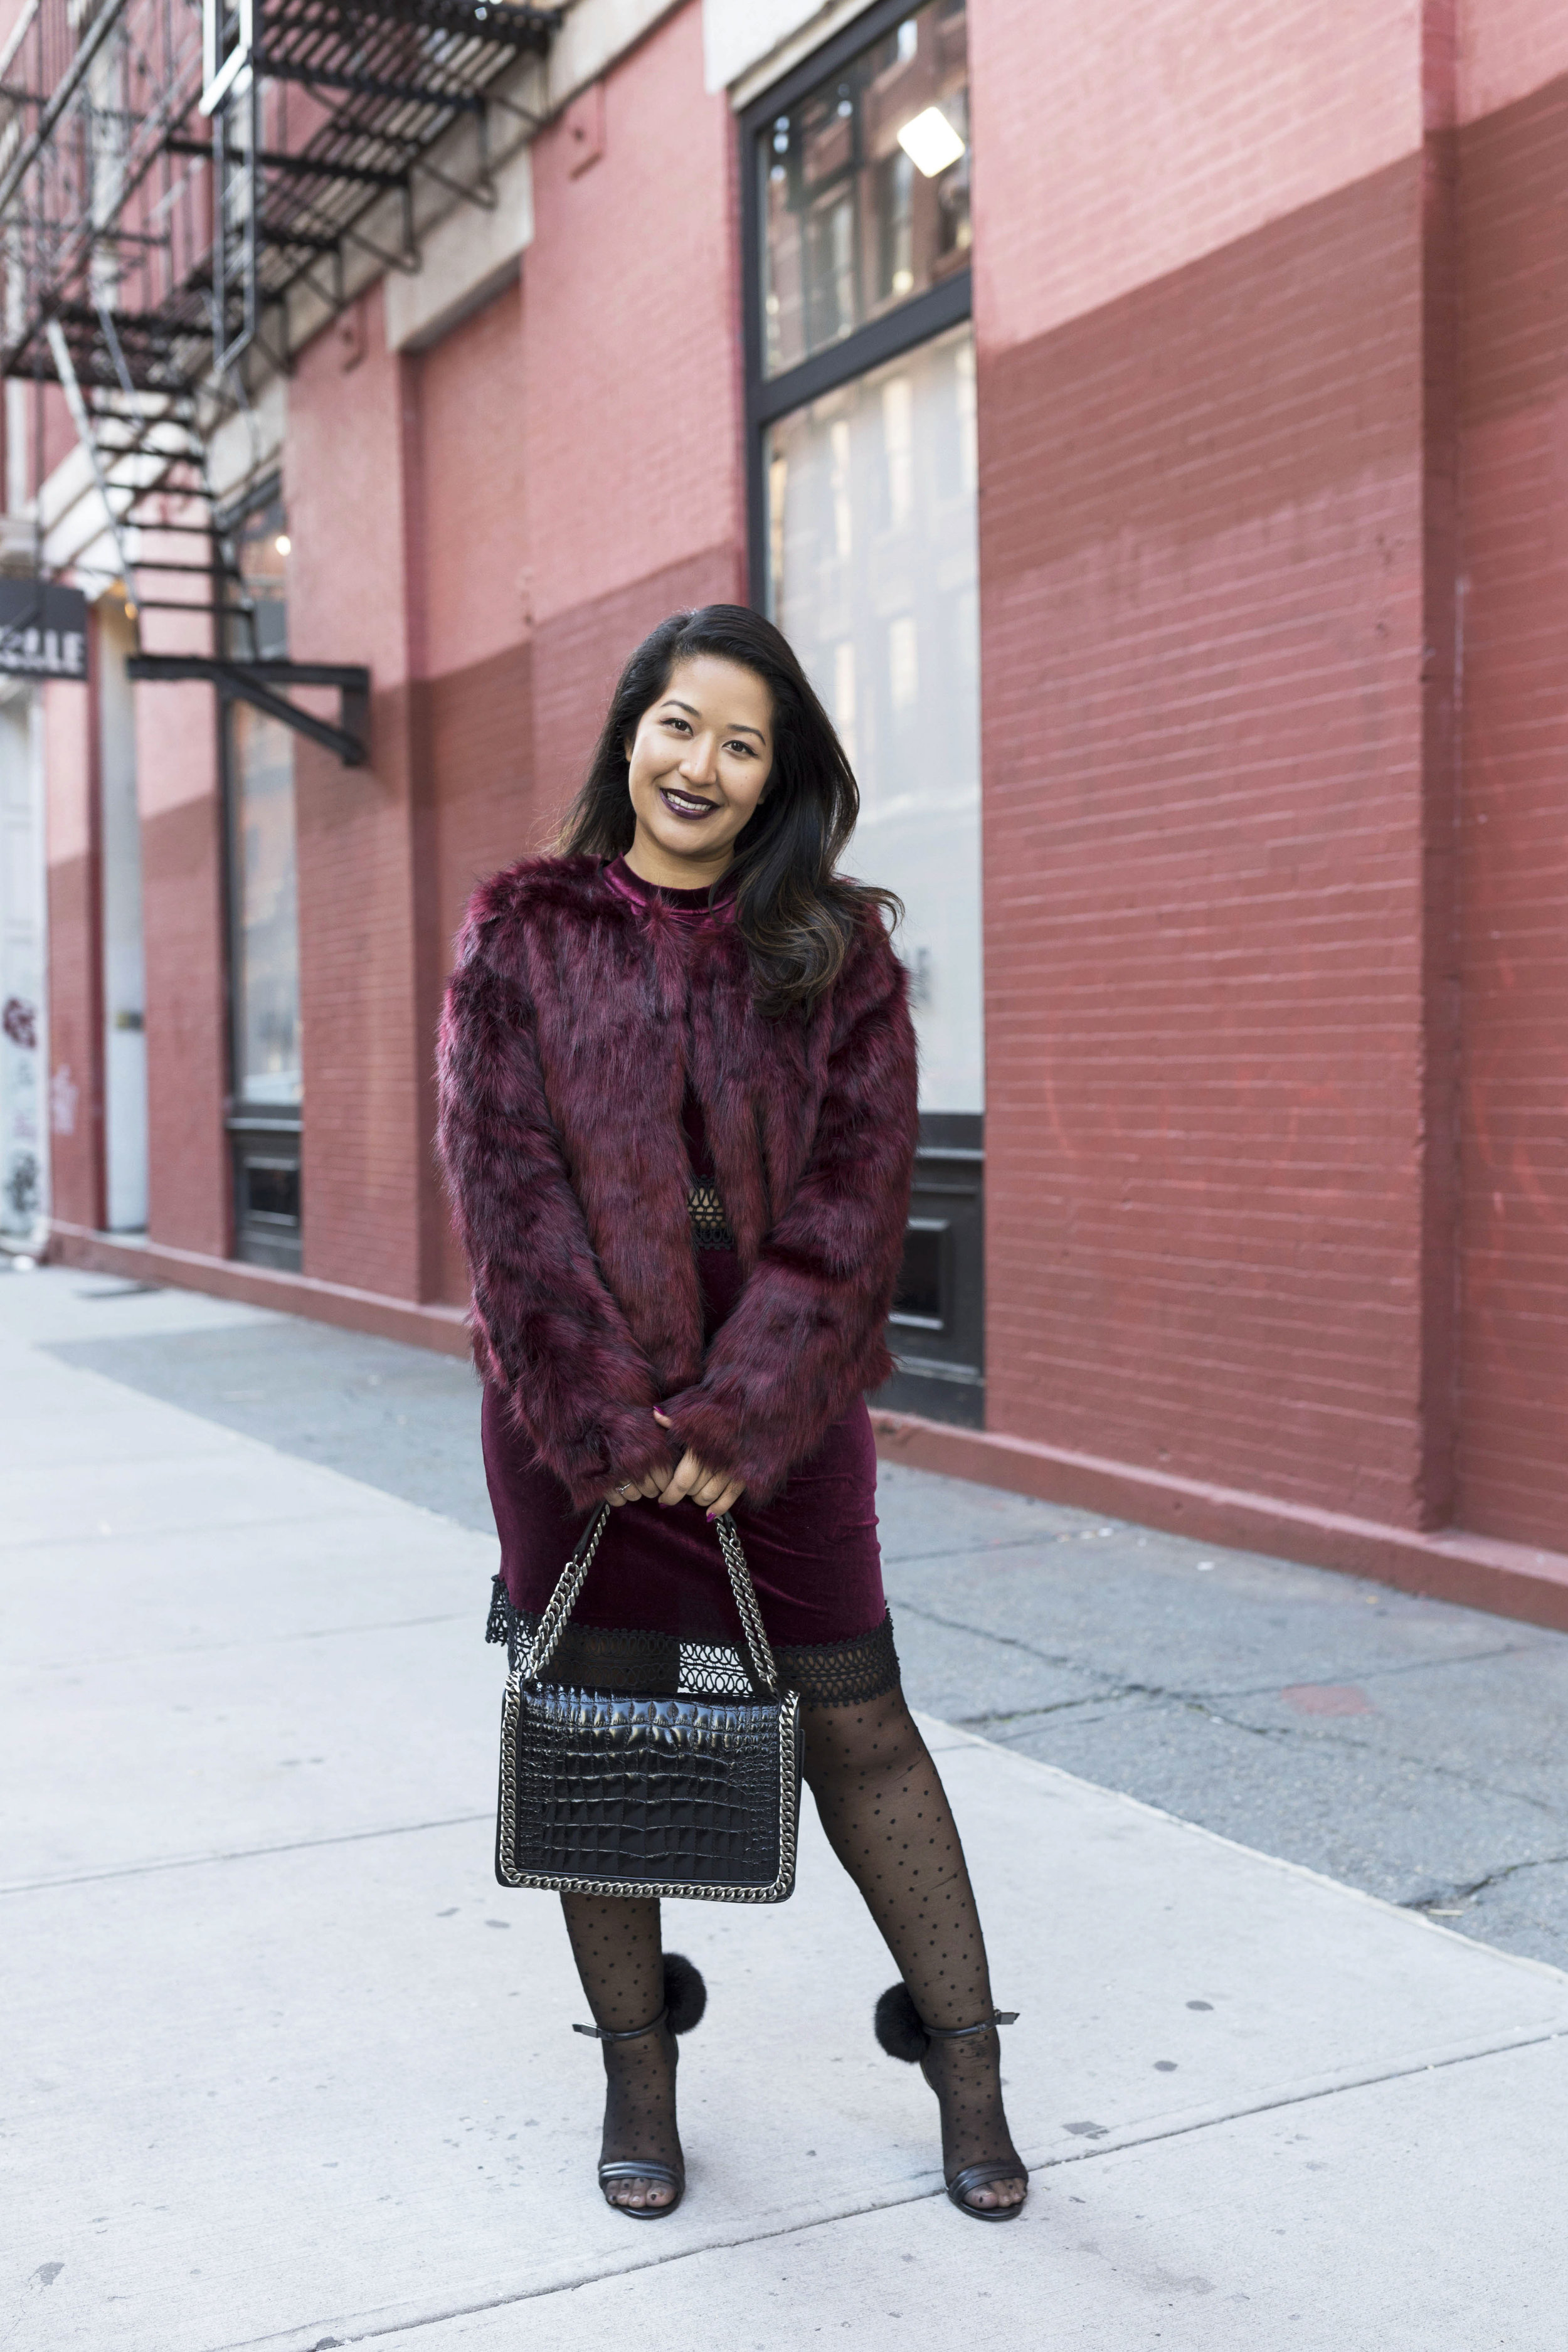 Krity S x Holiday Outfit x Century 21 Burgundy Velvet Dress and Faux Fur1.jpg